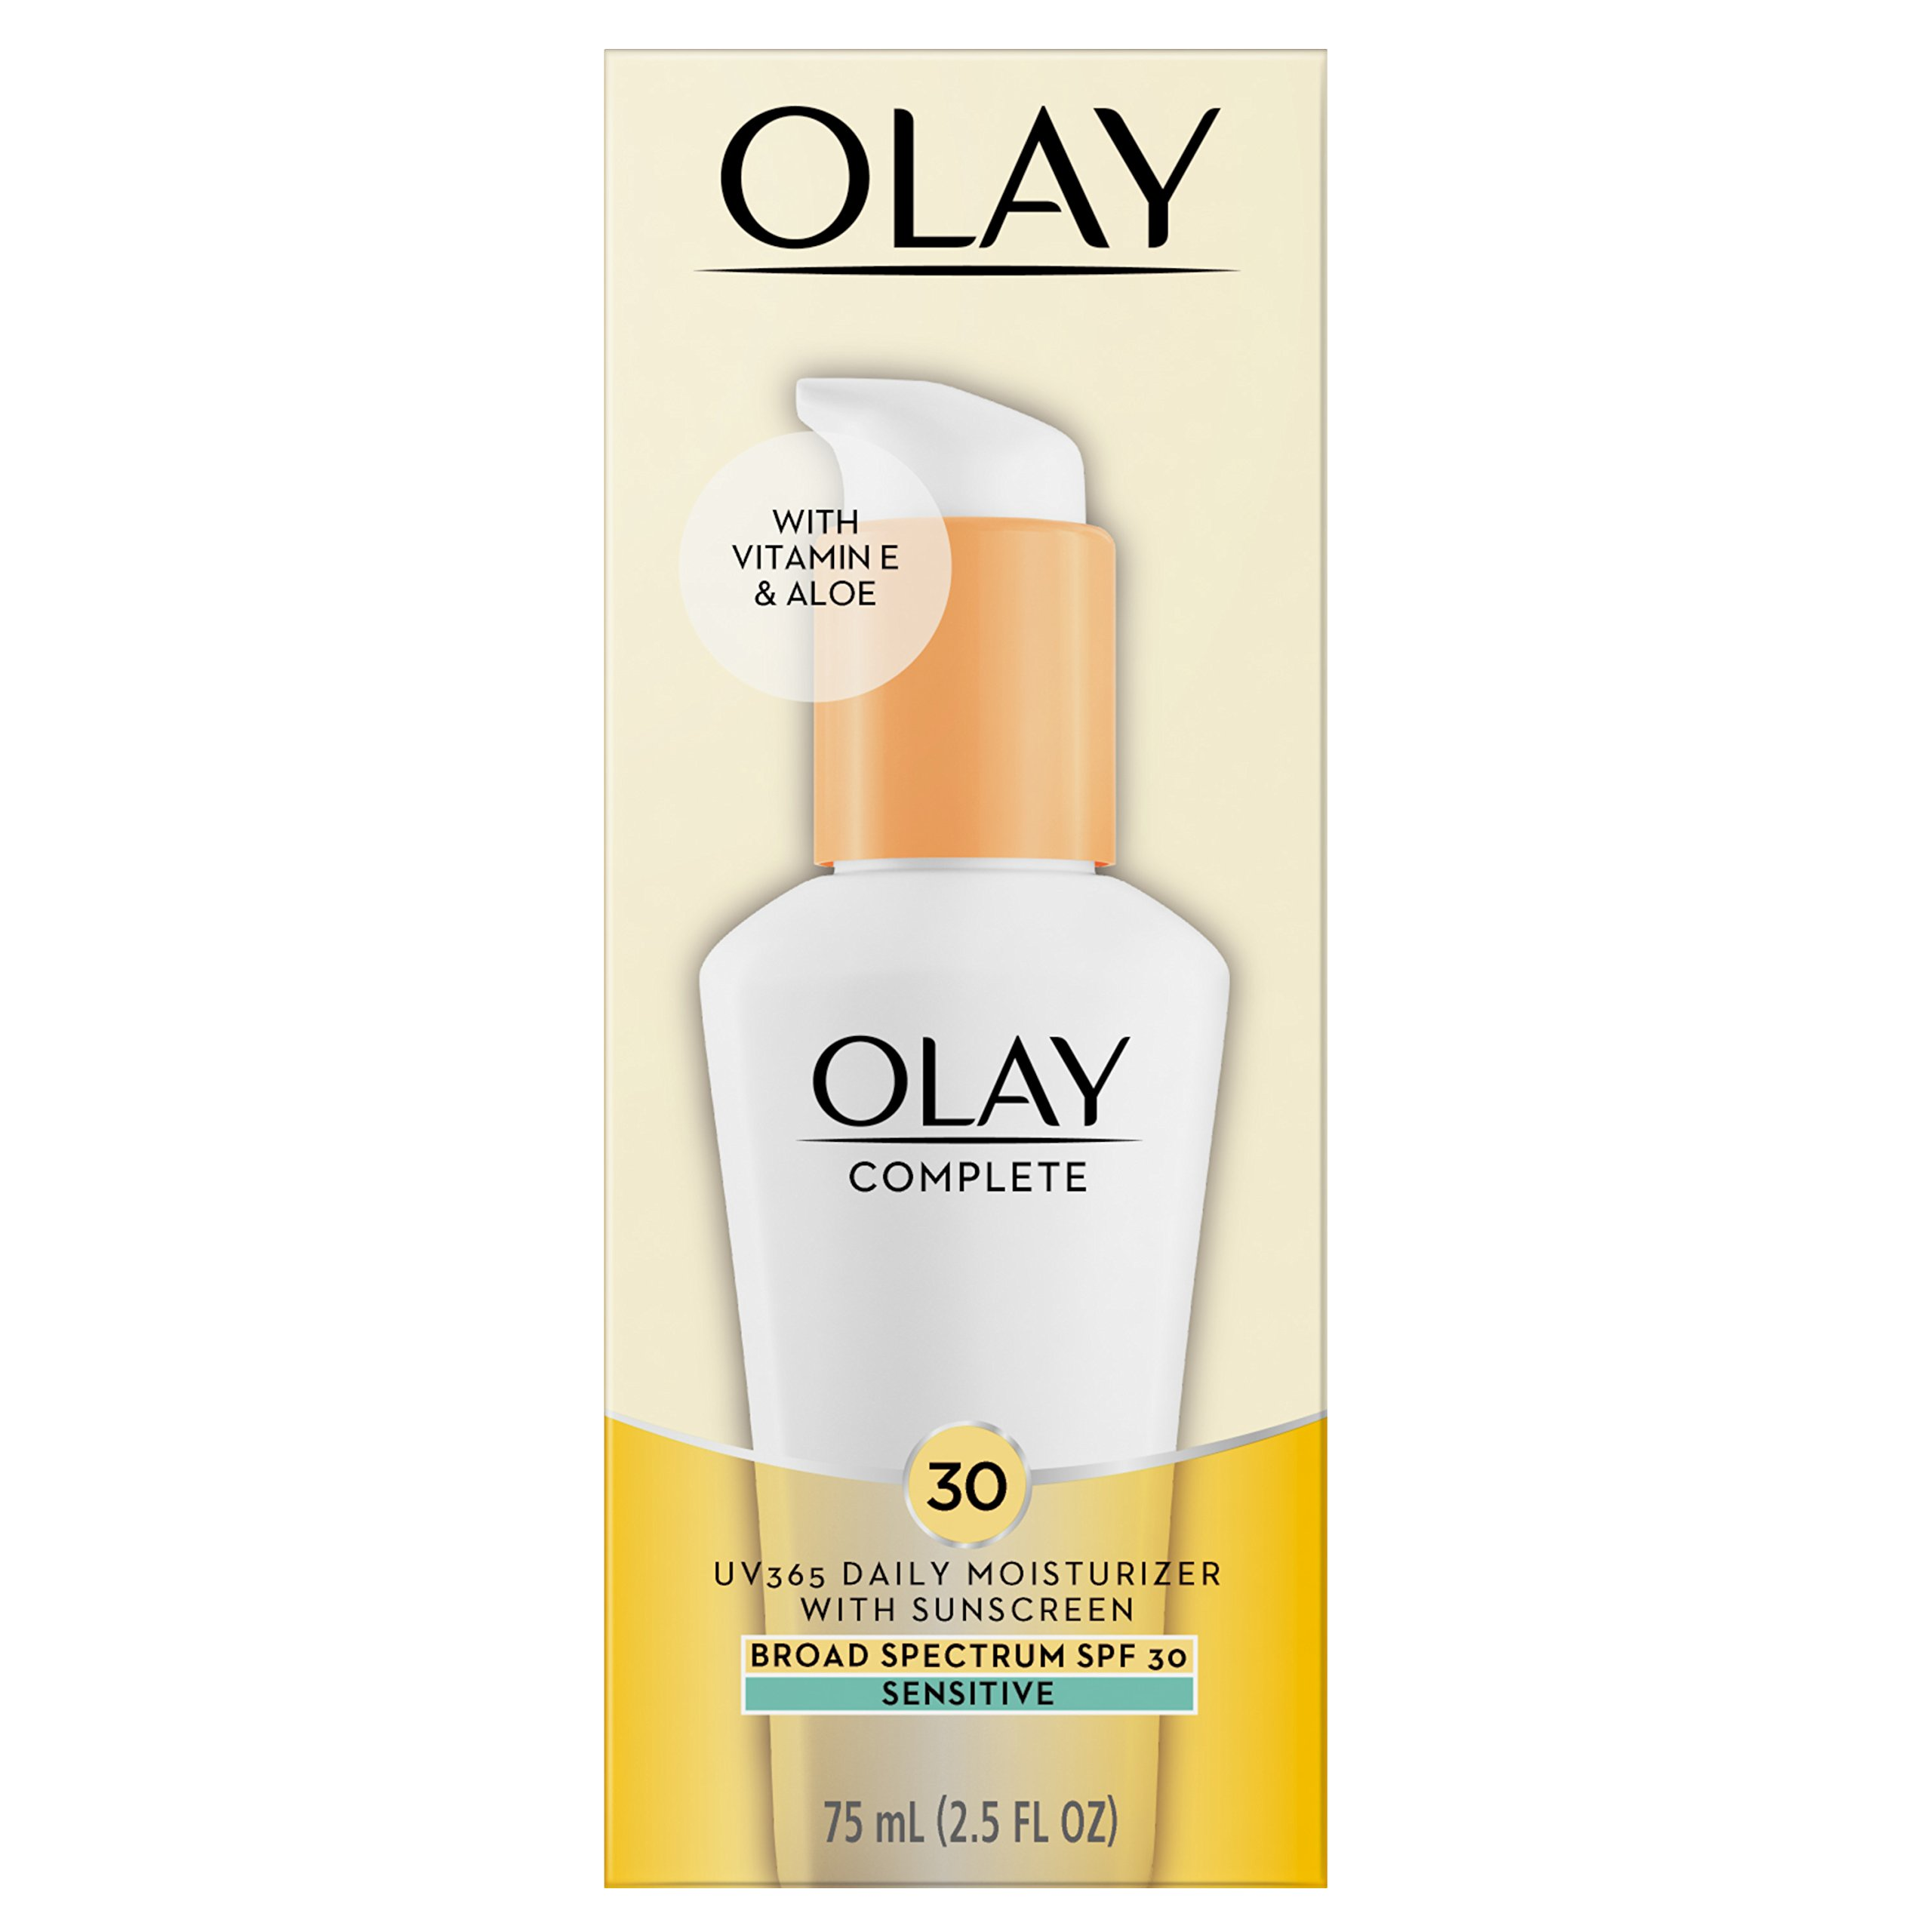 Face Moisturizer by Olay, Complete All Day Moisturizer with Broad Spectrum SPF 30 - Sensitive, 2.5 Fl Oz by Olay